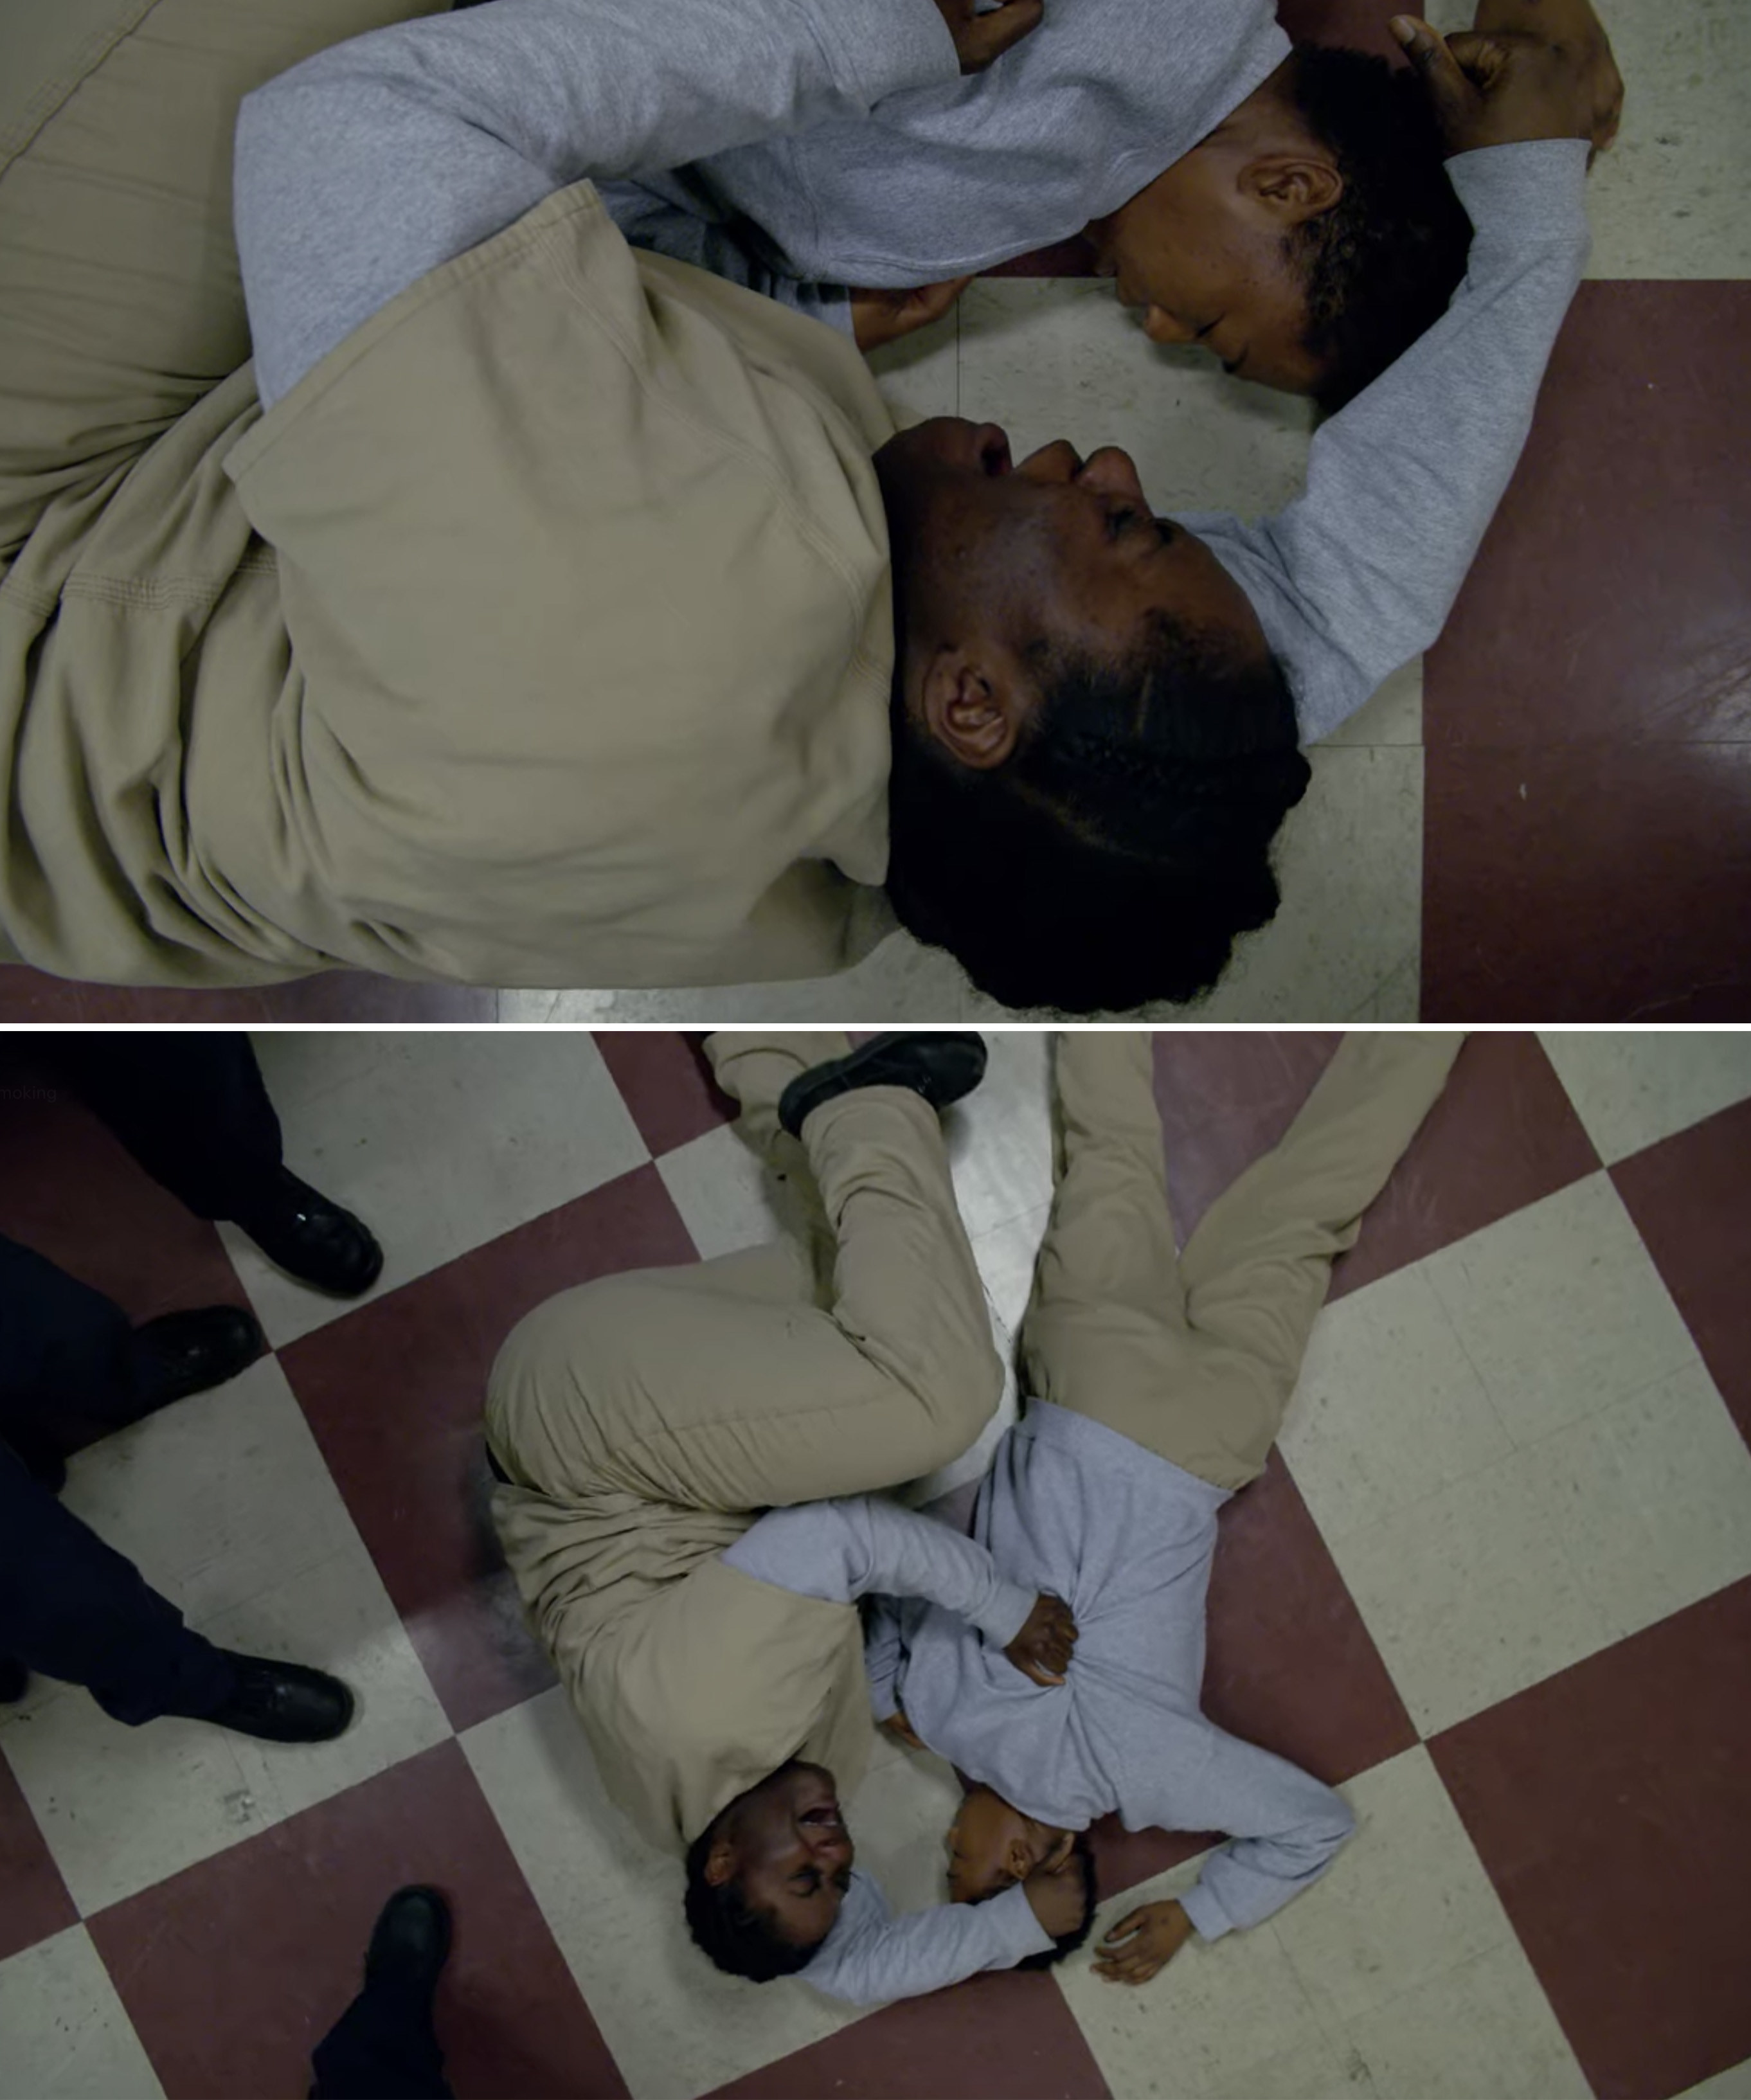 Taystee sobbing and holding Poussey's body